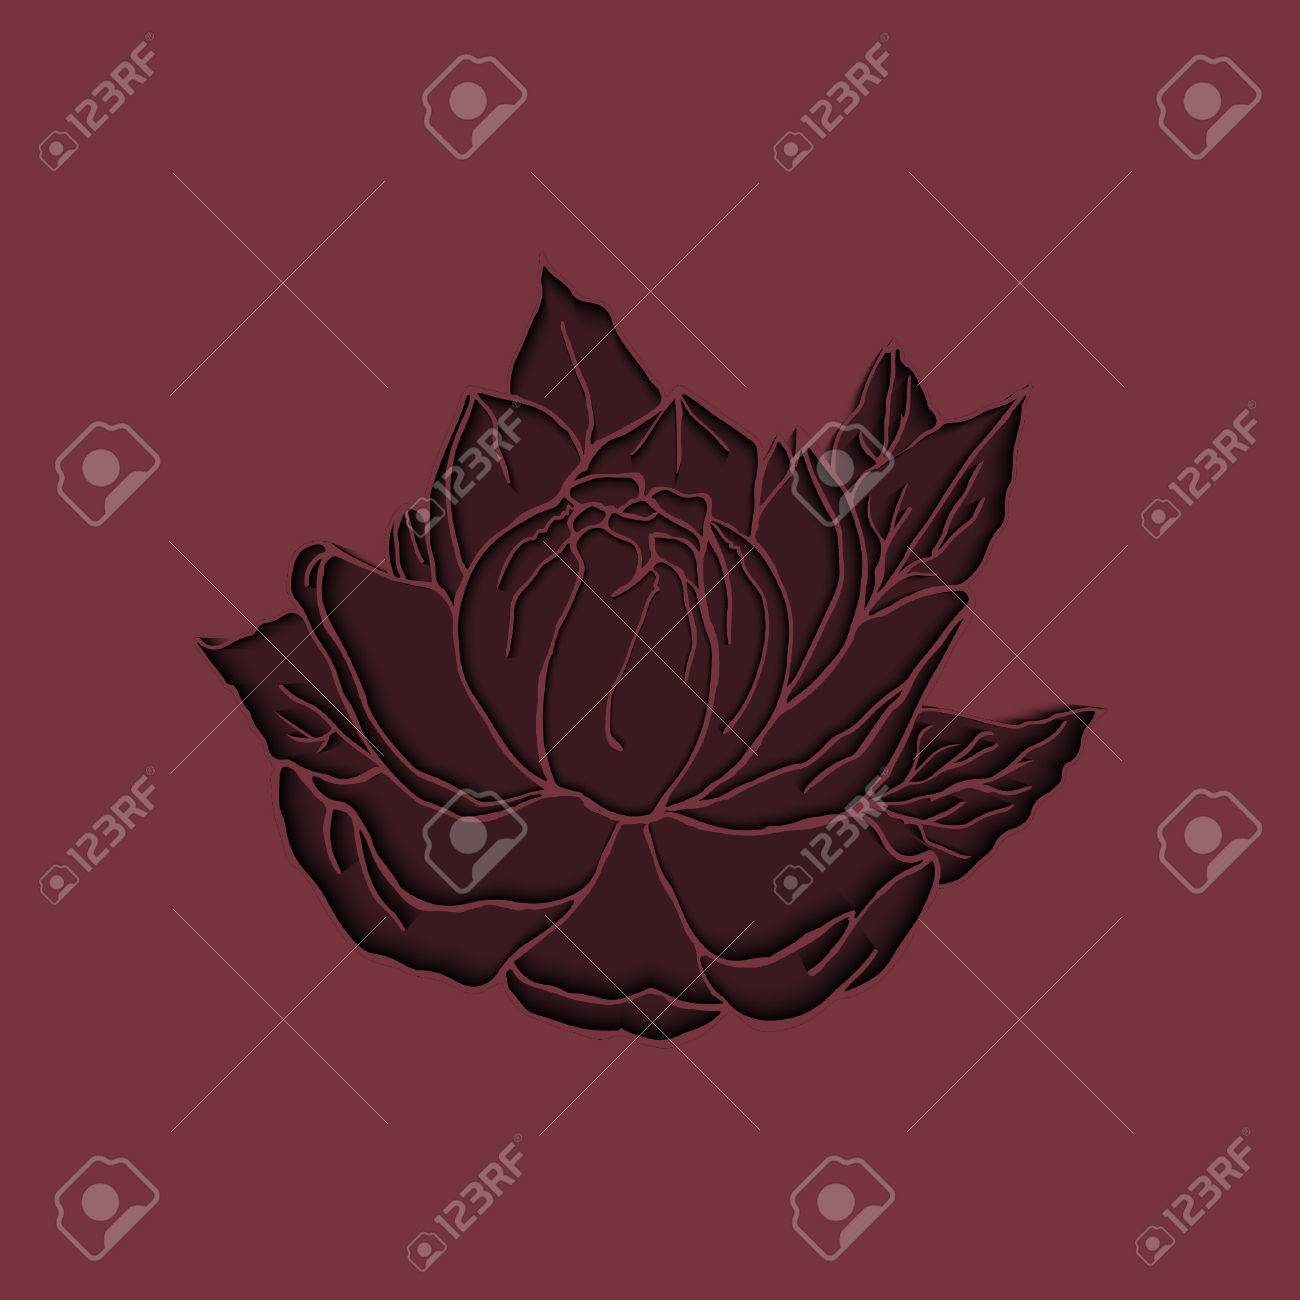 Cut Paper Burgundy Peony For Backgrounds, Cards, Wedding Invitations ...